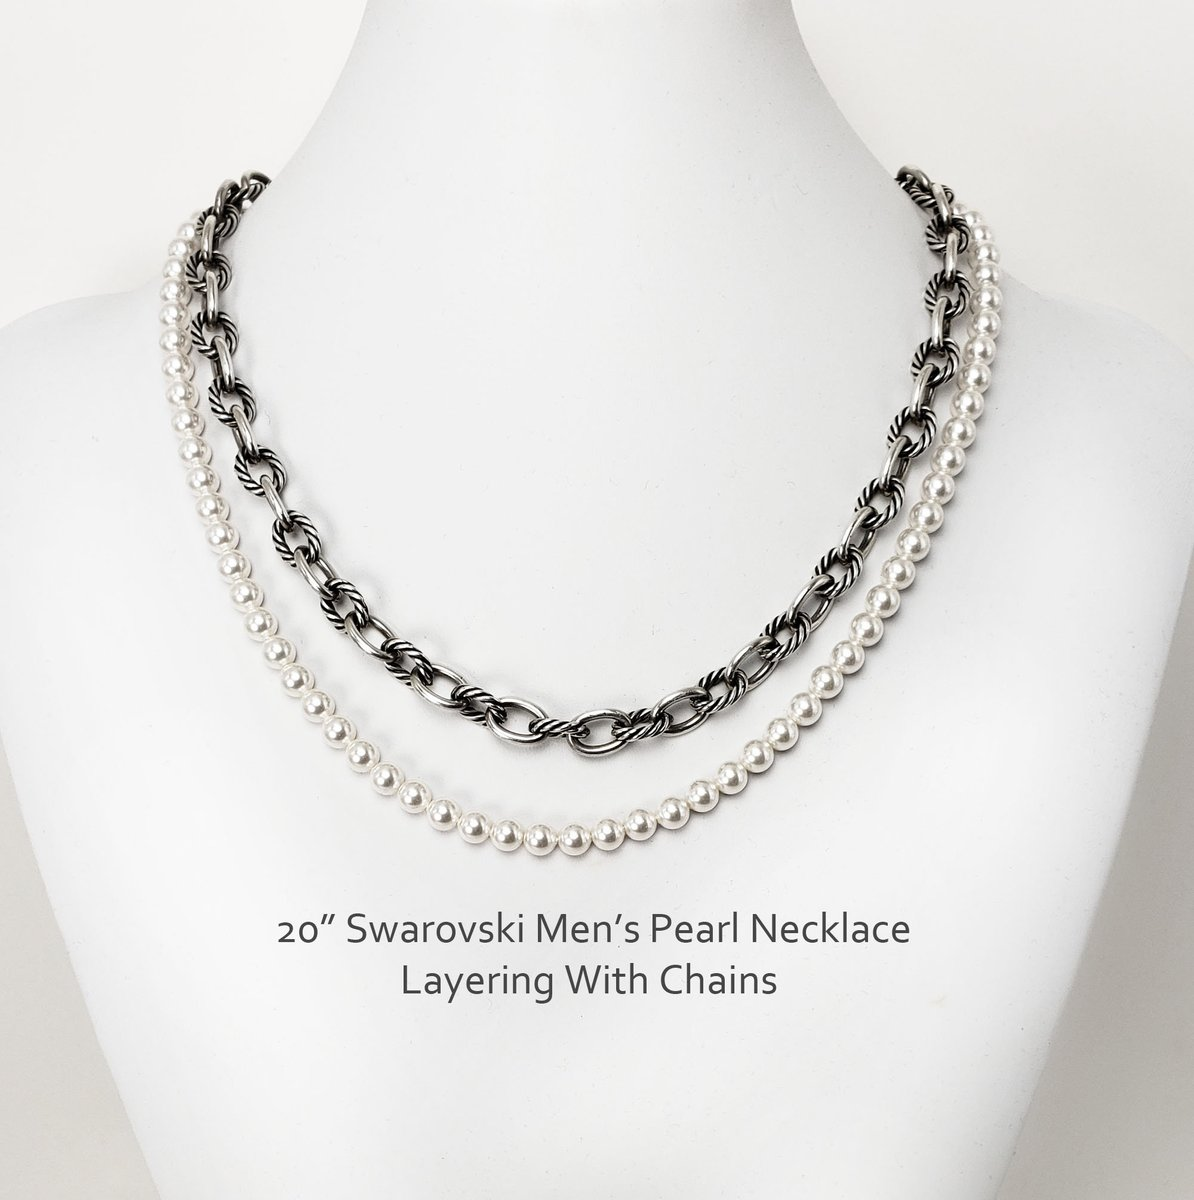 Men's Pearl Necklace 20 Inch Harry Styles Inspired Swarovski Pearl Necklace 6mm Pearls For Layering With Chains  #shopsmall #giftsforher #handmade #Etsy #christmasgifts #style #jewelryblogger #fashion #handmadejewelry